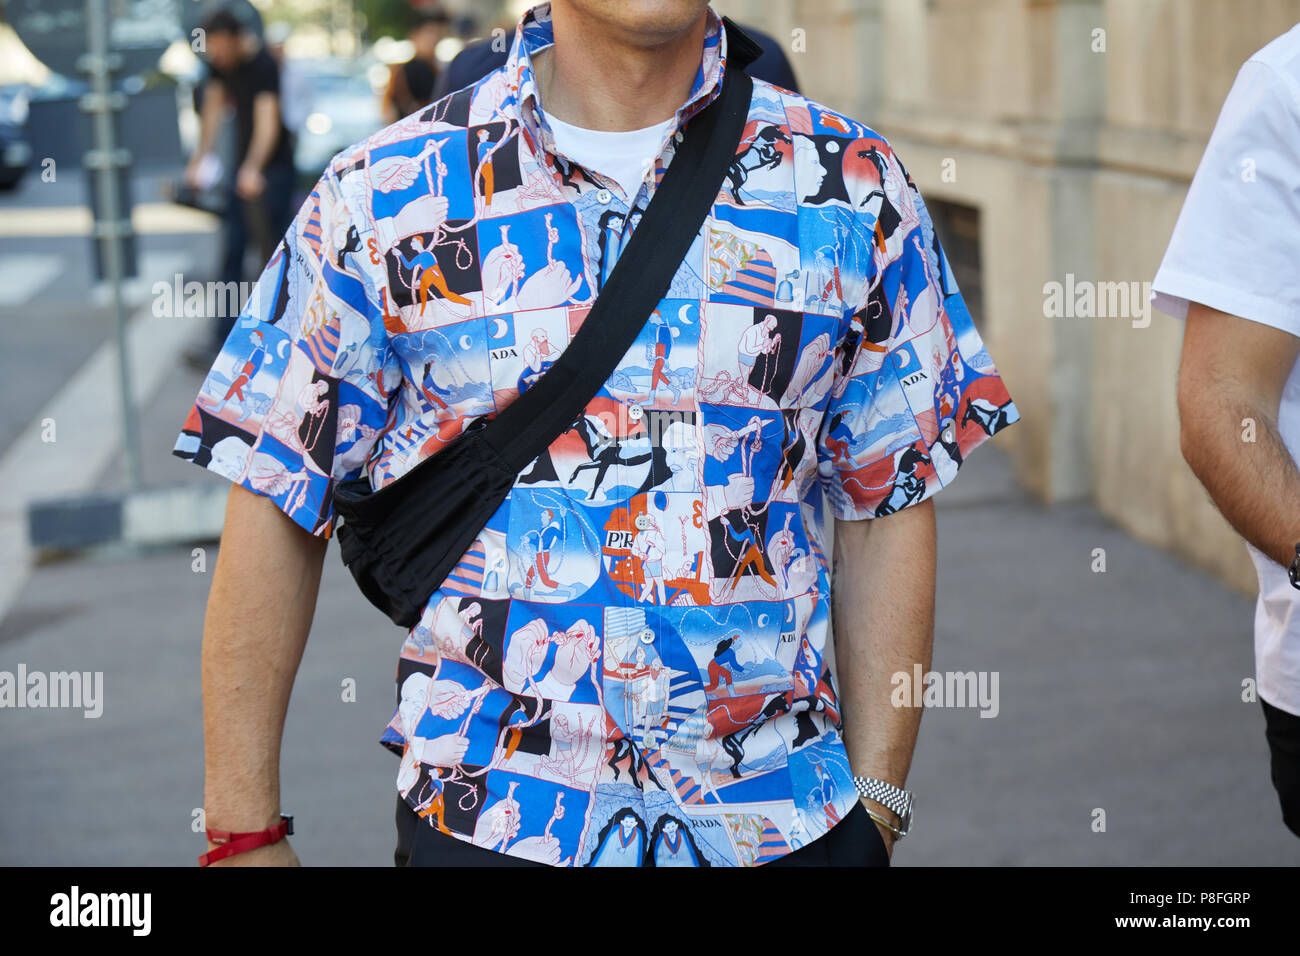 92b8927b4 MILAN - JUNE 17: Man with comics in blue and red colors on tshirt before  Prada fashion show, Milan Fashion Week street style on June 17, 2018 in  Milan